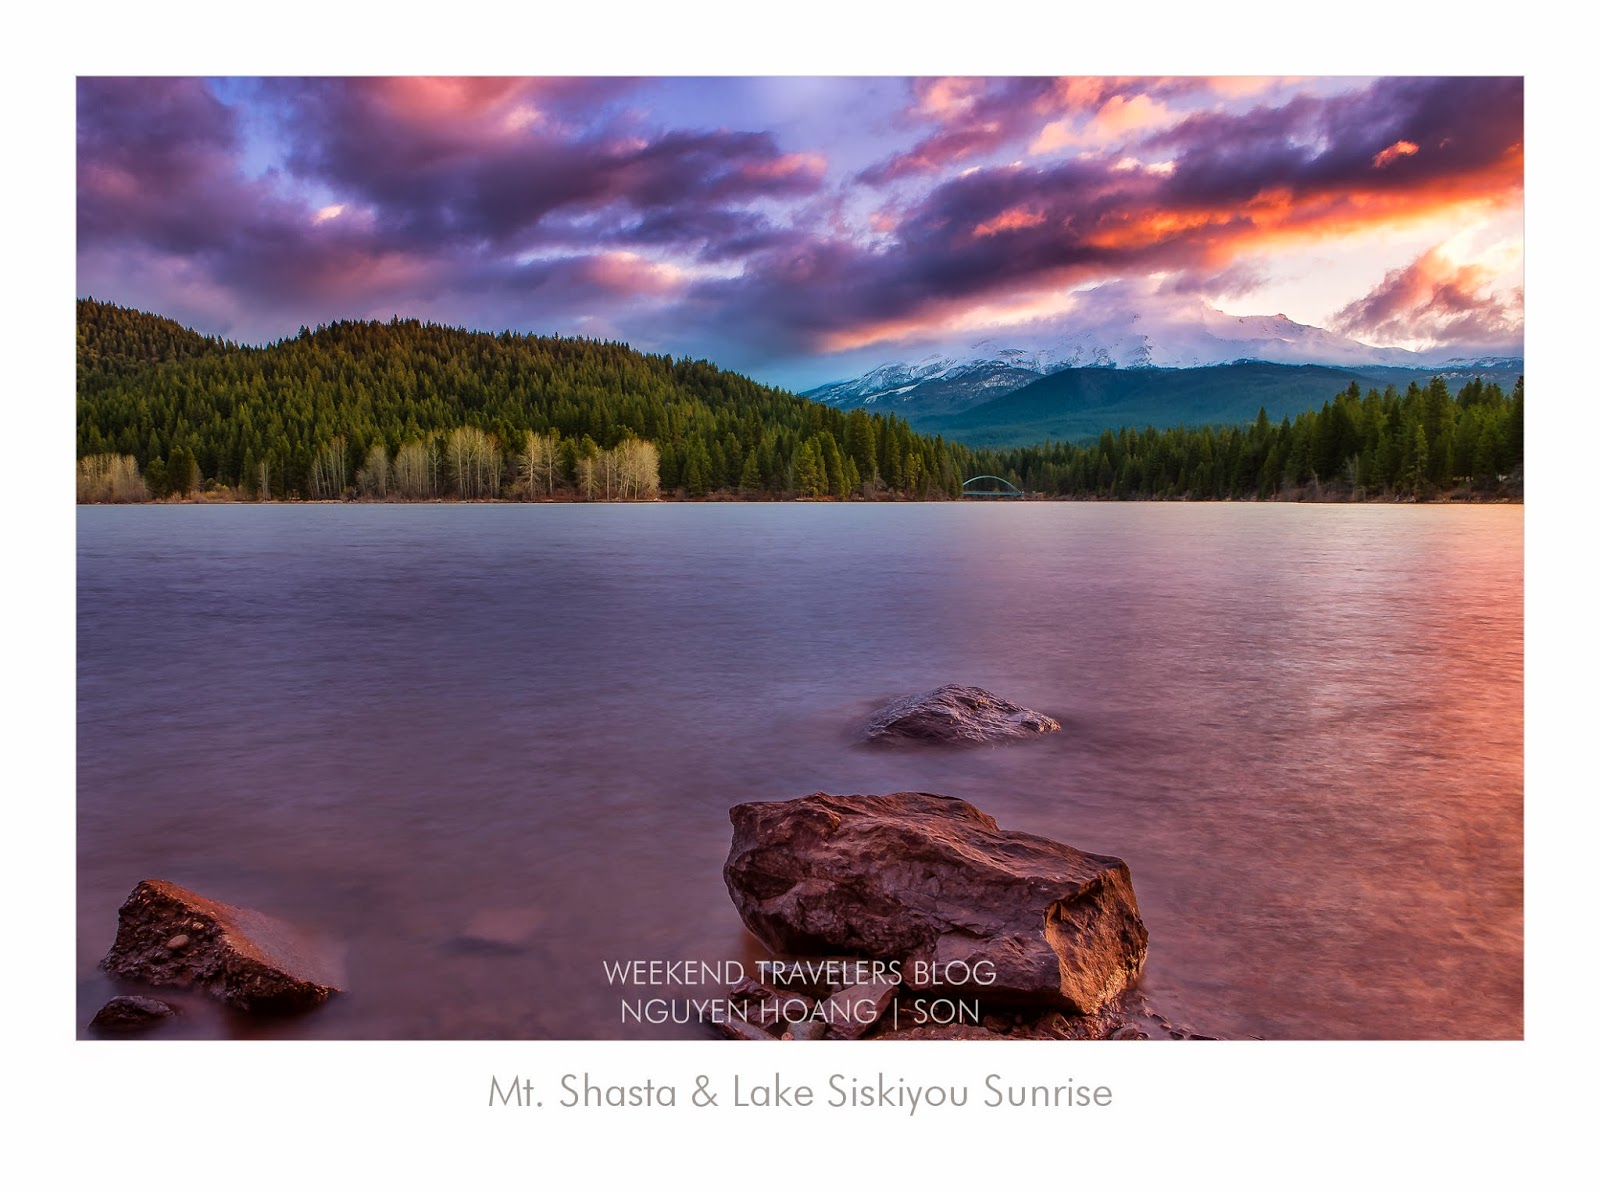 Sunrise on Mt. Shasta and Lake Siskiyou - Shasta Cascade, Northern California